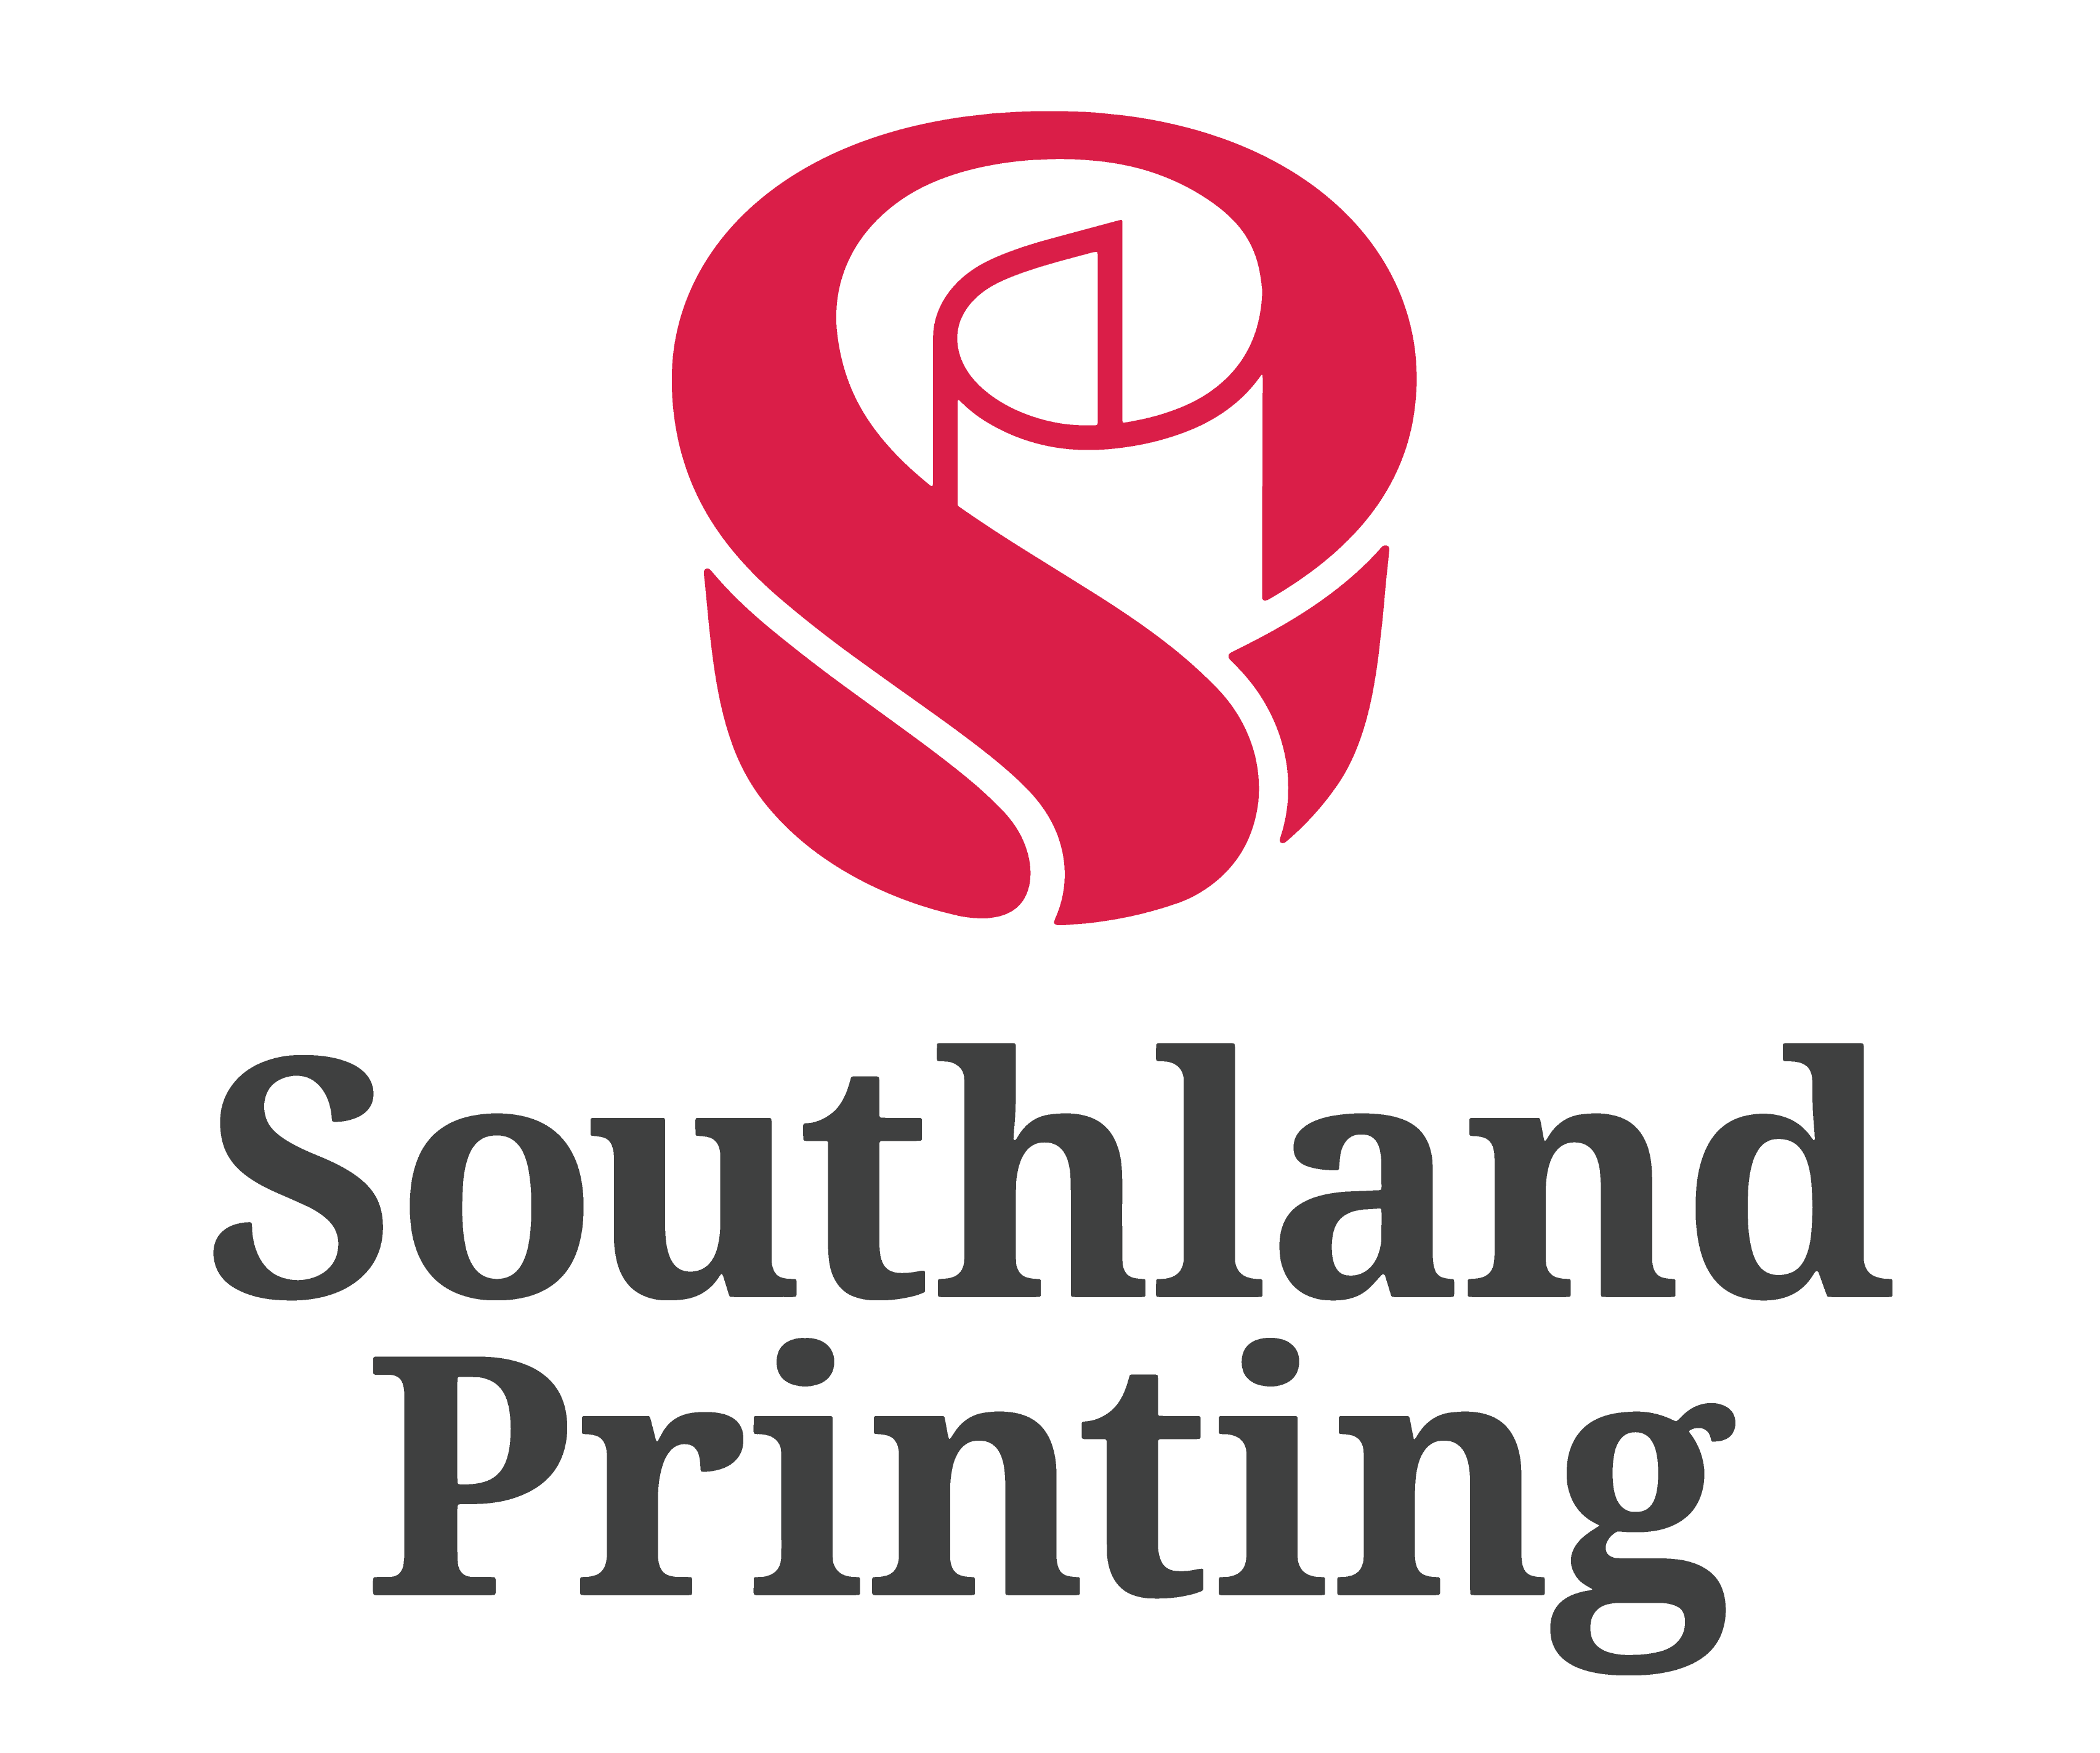 Southland Printing